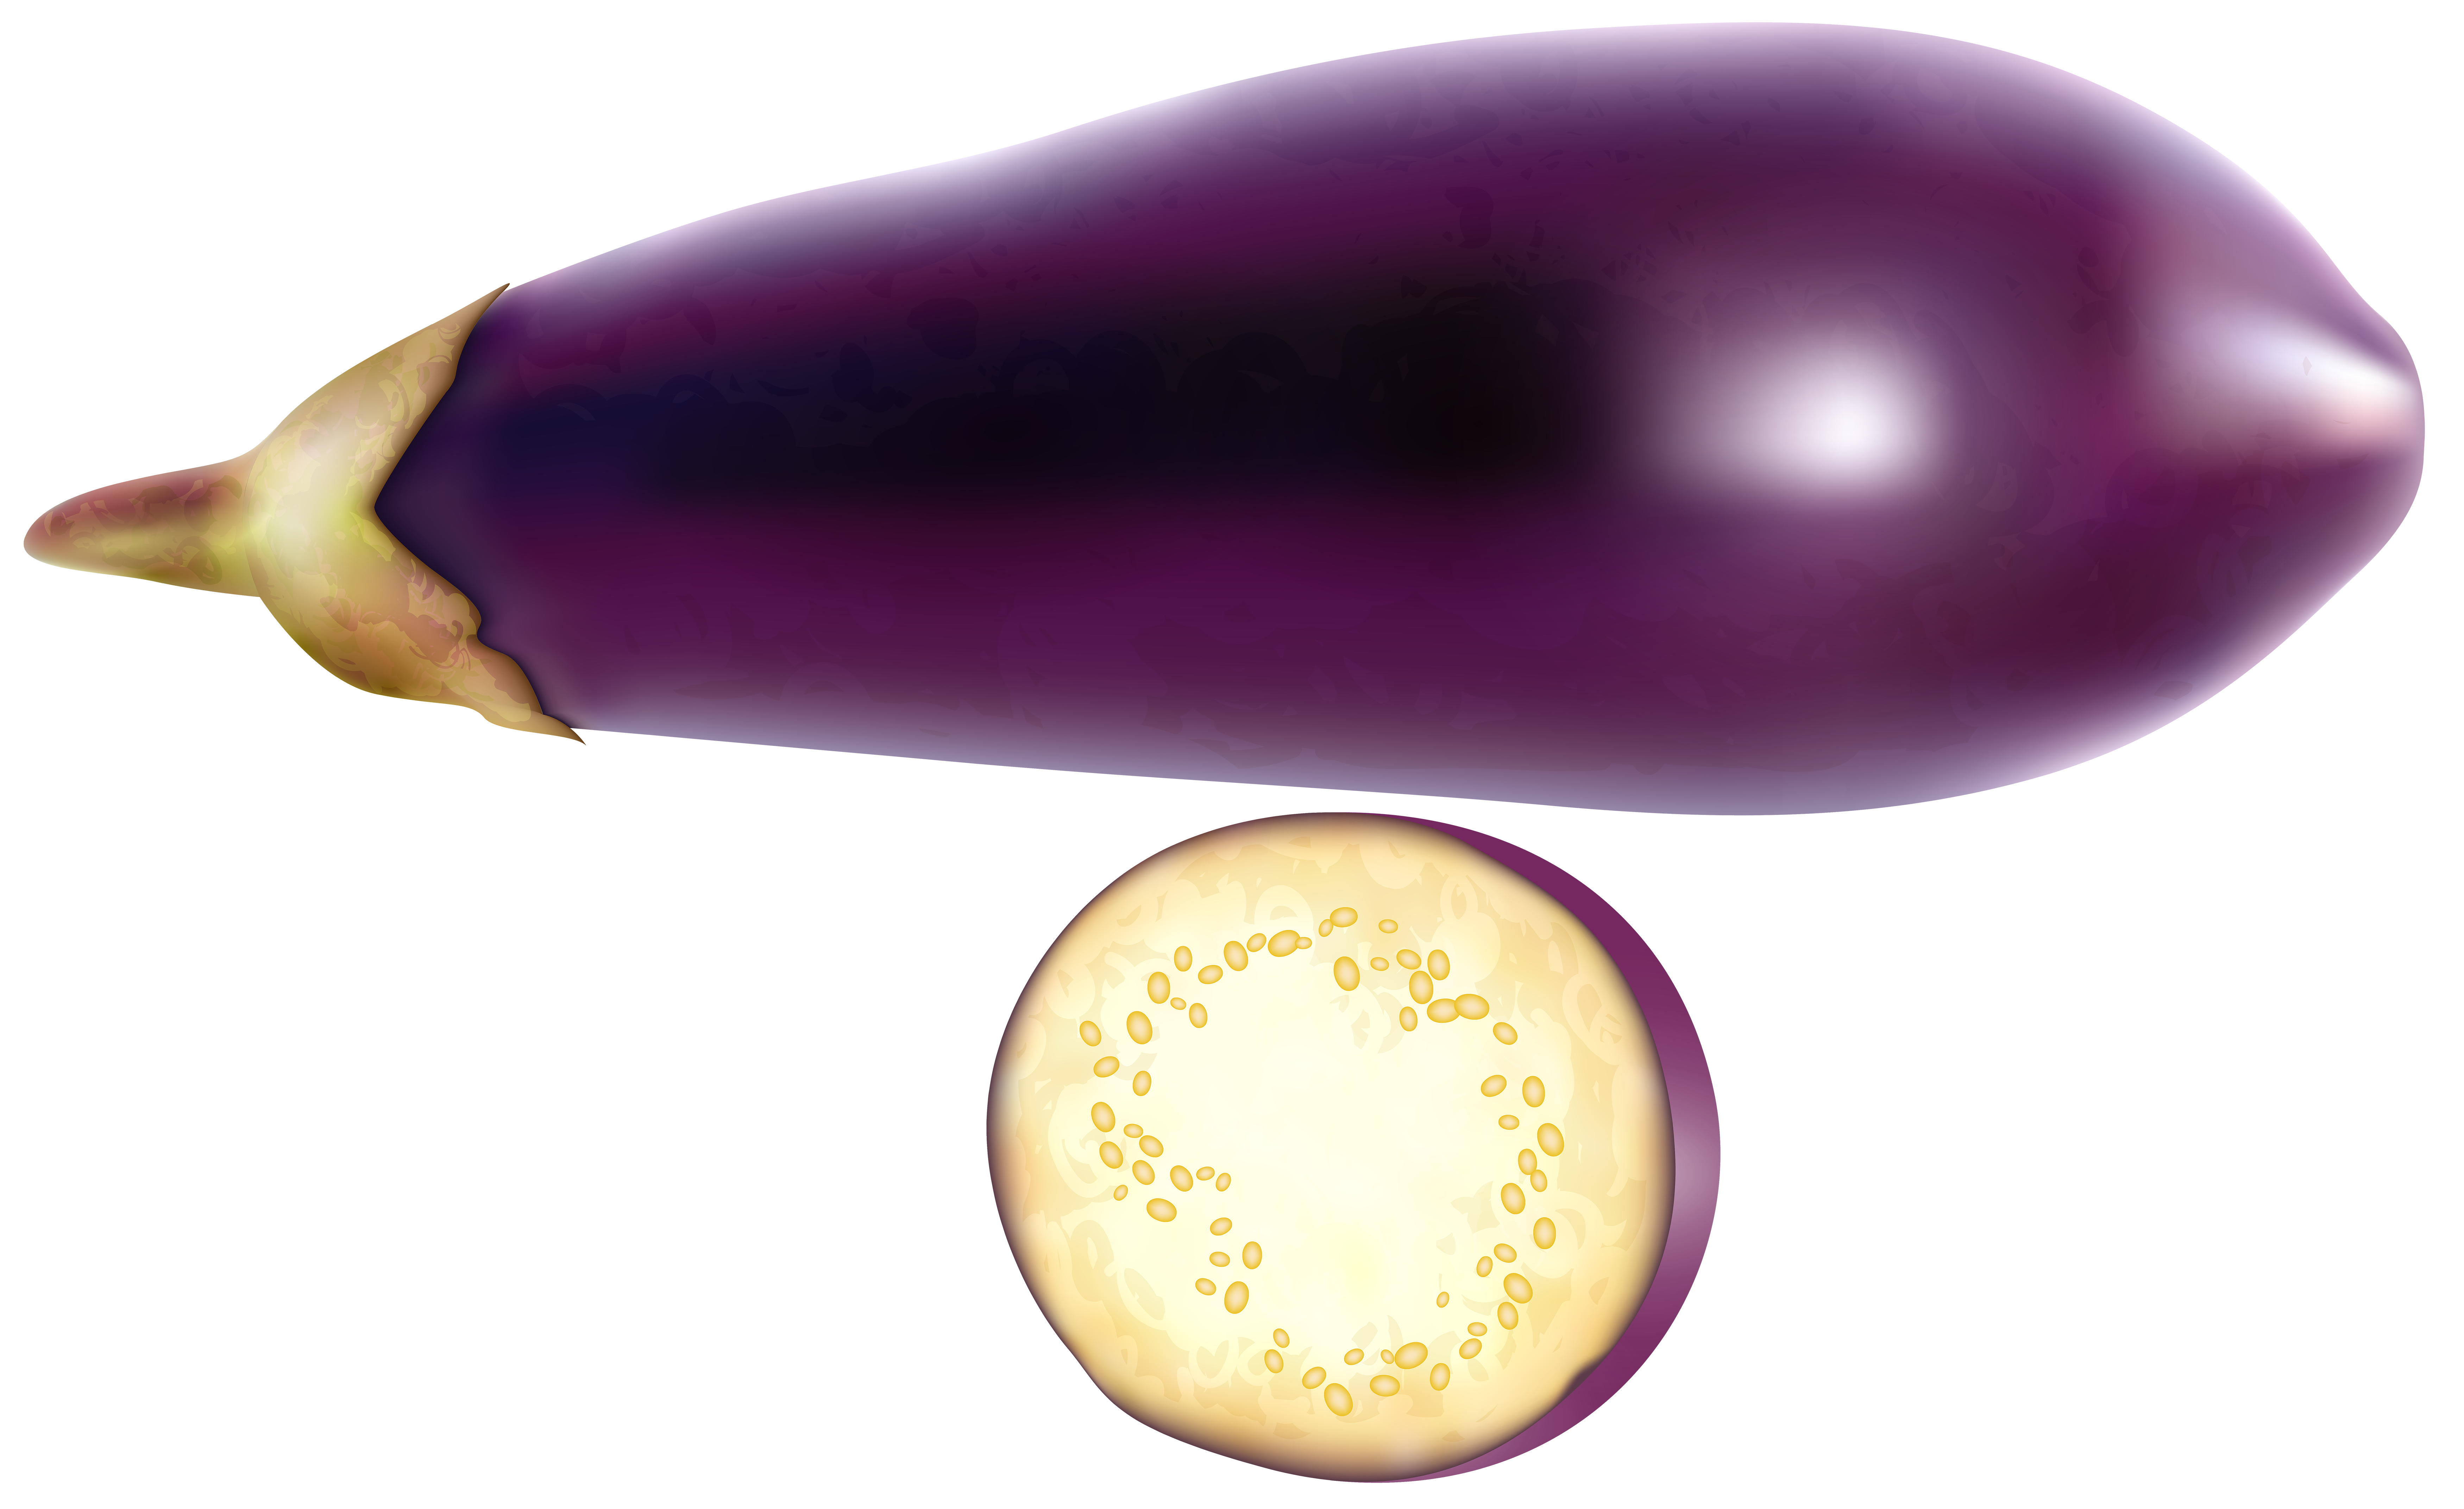 cliparts for download eggplant clipart and use presentations kumdotvm #29877